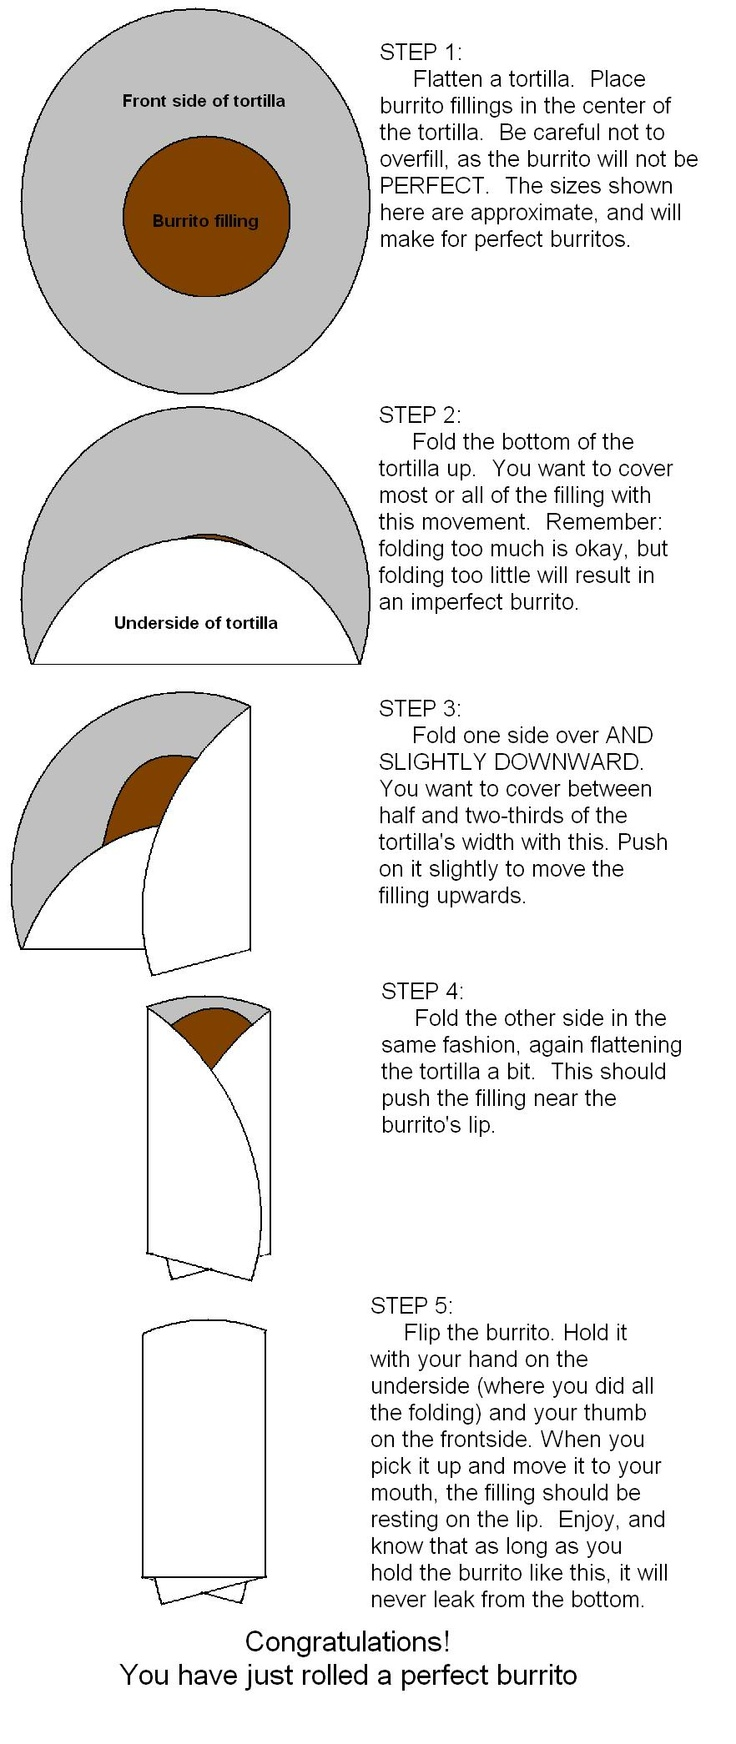 How to fold a perfect burrito. I always seem to have a hard time with this